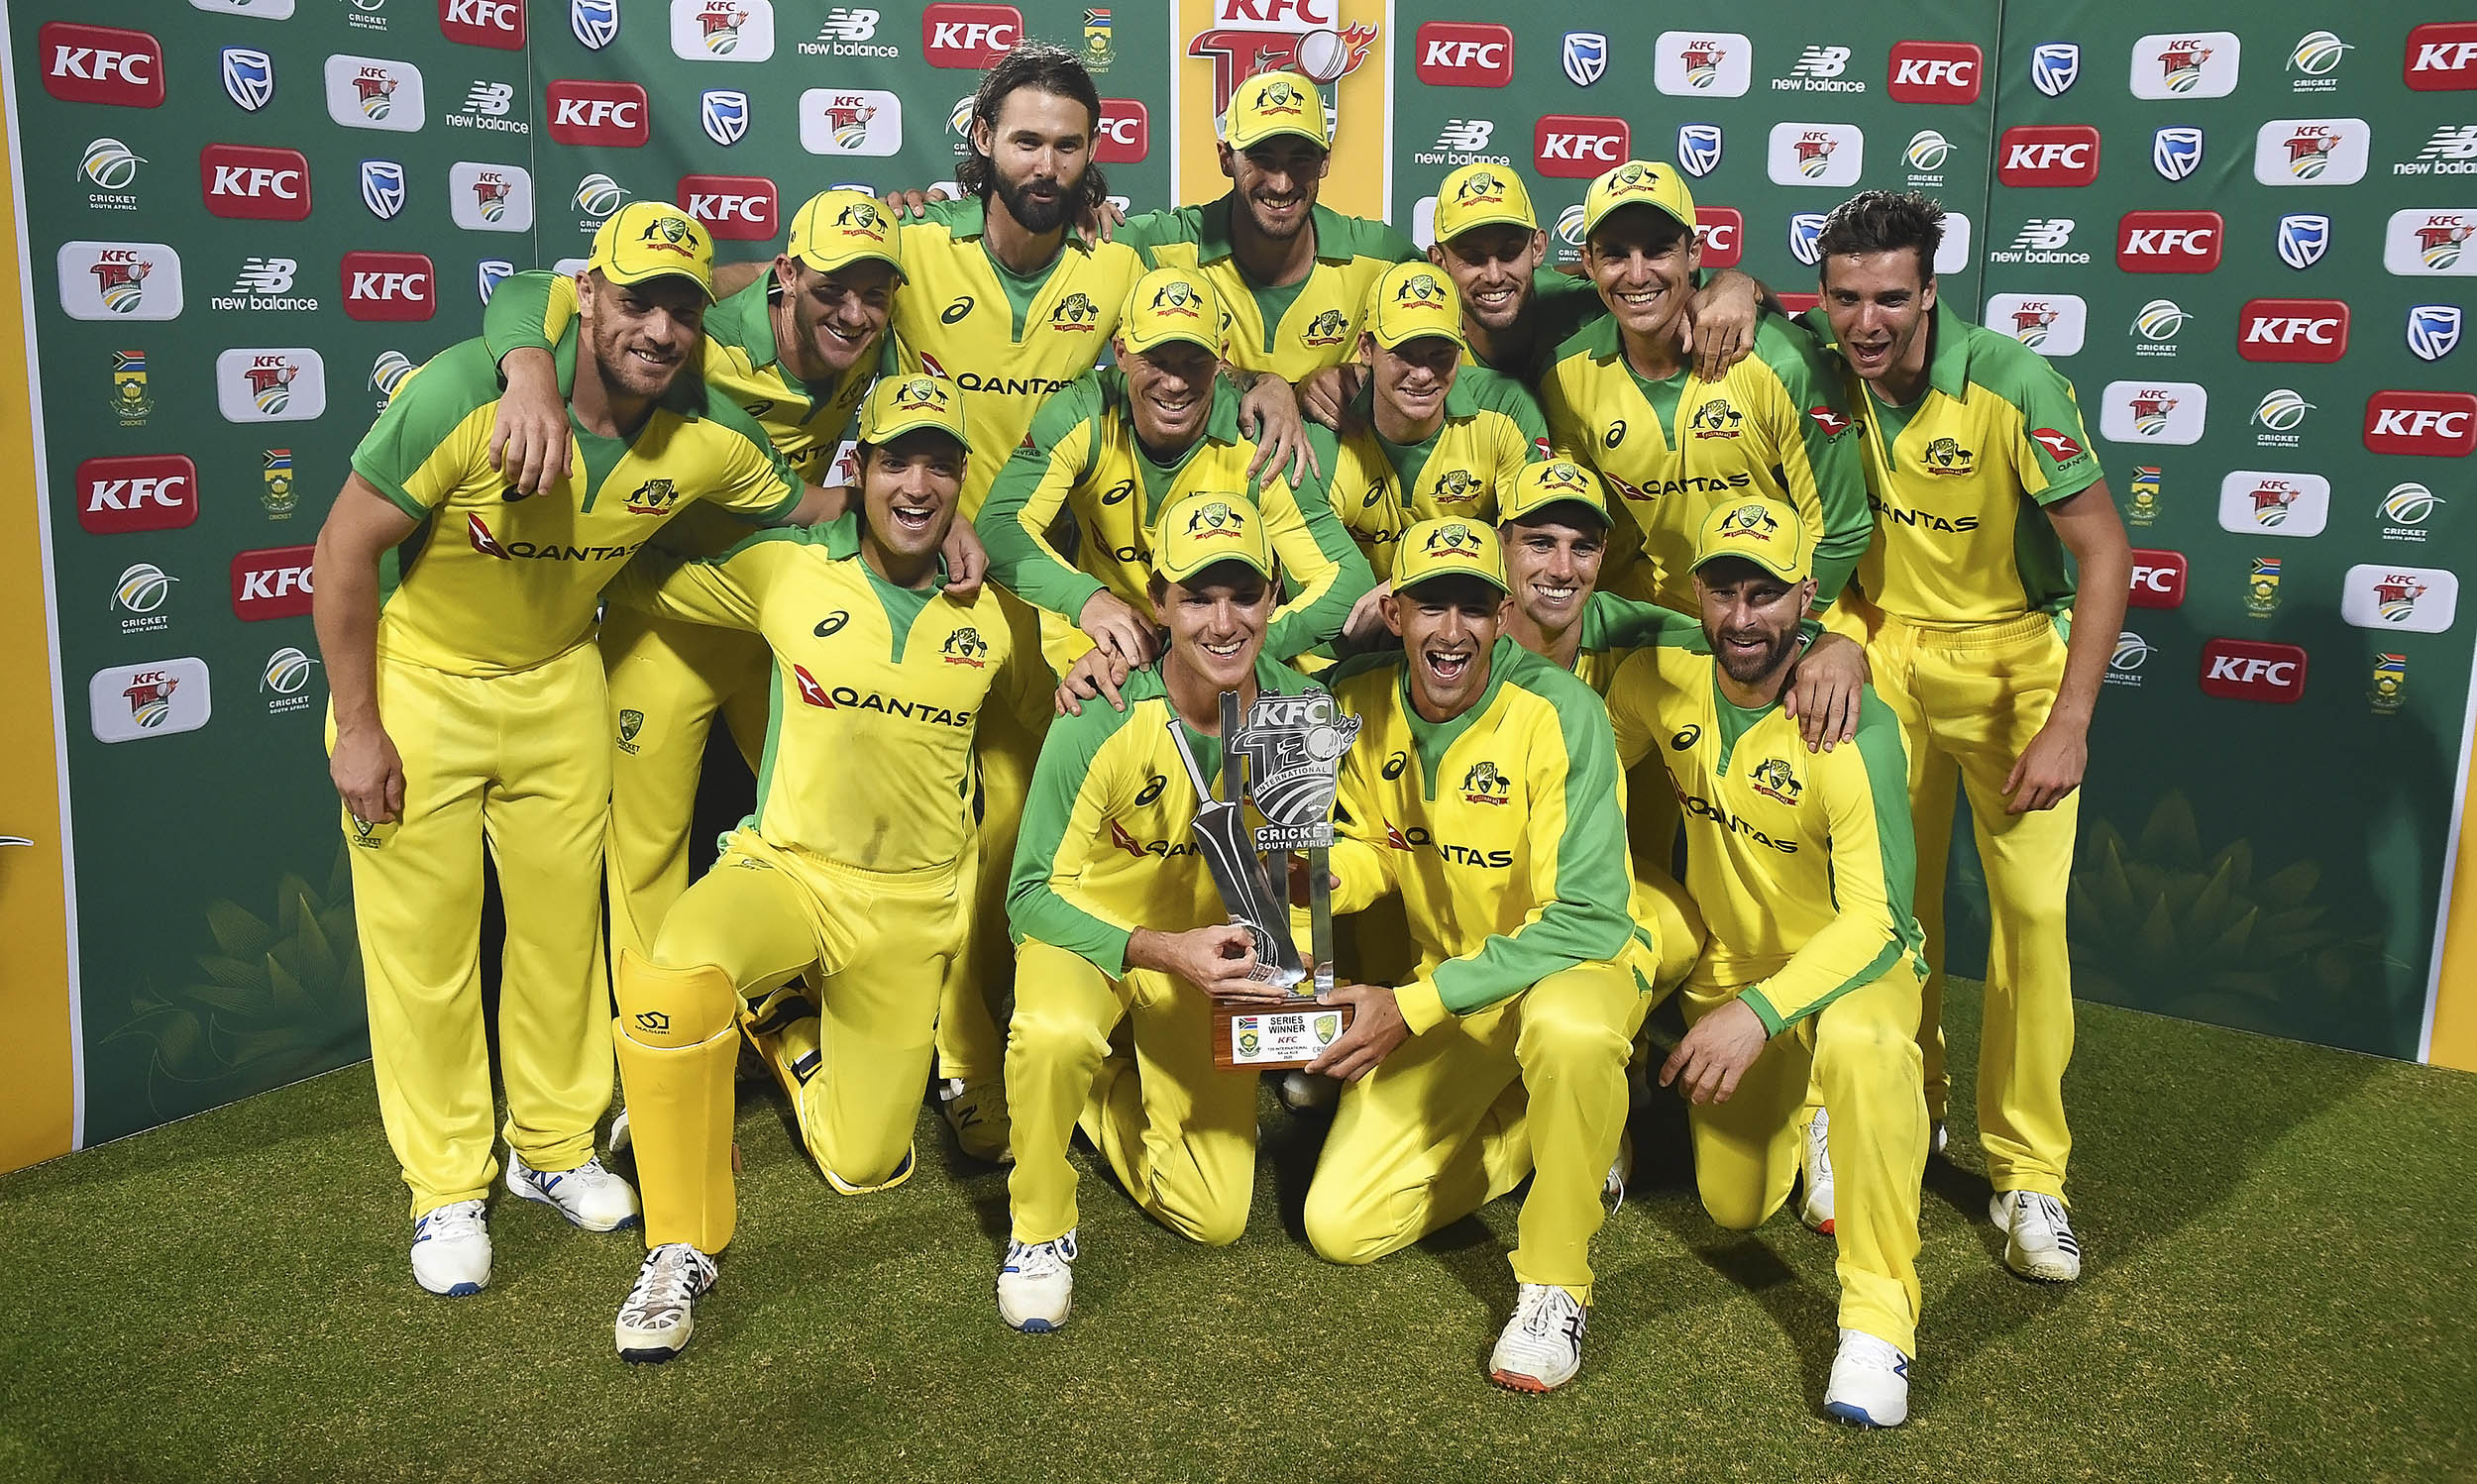 Australia celebrated winning the T20 series against South Africa at Newlands Cricket stadium in Cape Town, South Africa, February 26, 2020.